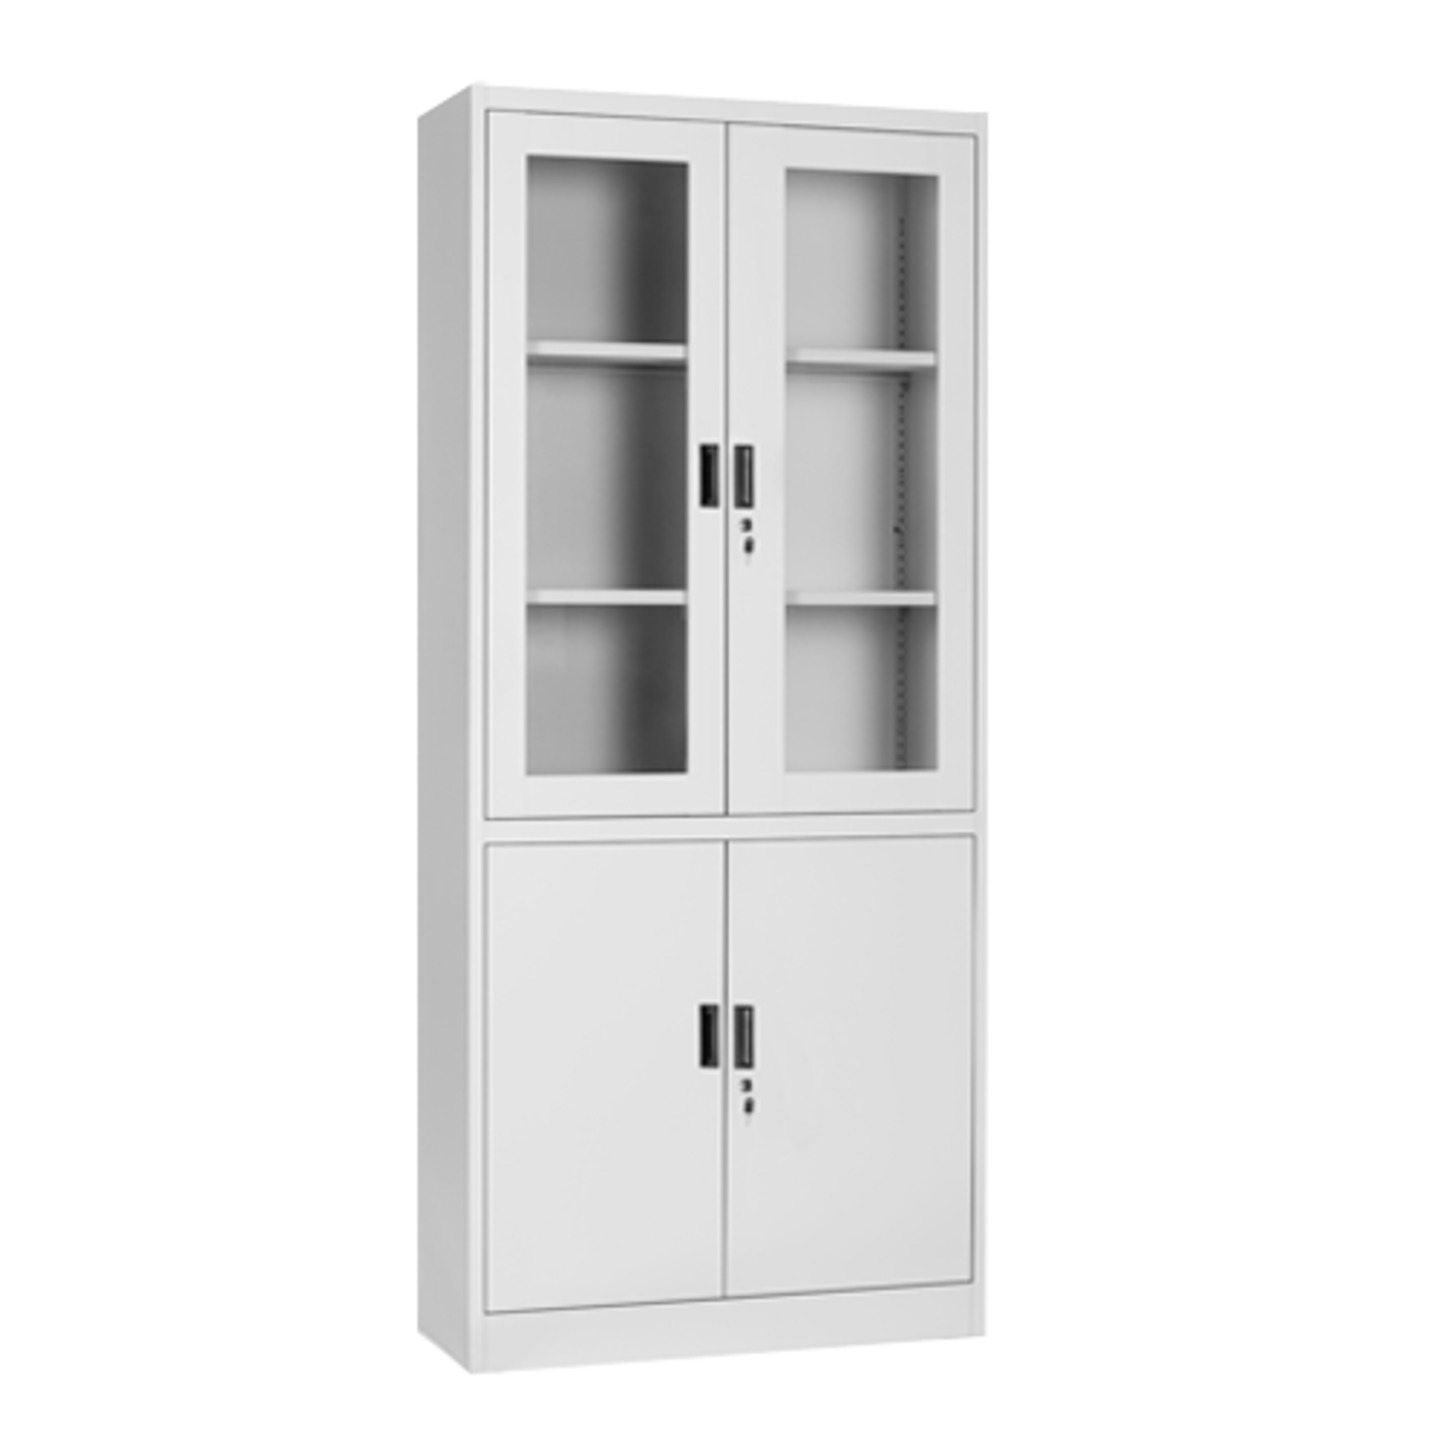 Full Height Kitchen Cabinets Fc H2 Full Height Swing And Glass Door Cabinet